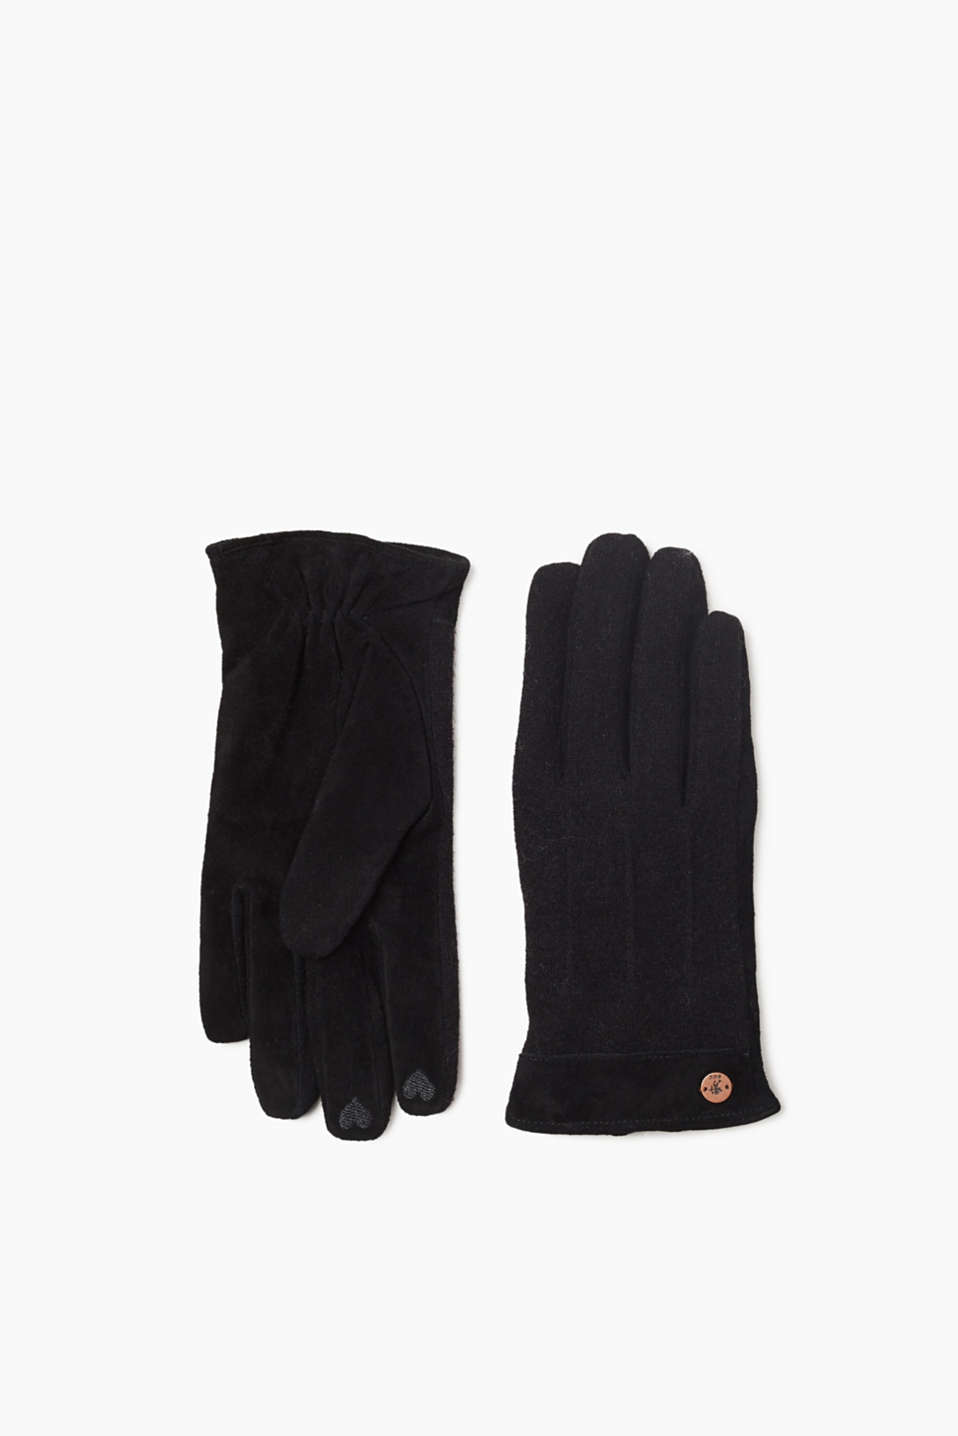 The mix of fine-knit fabric and soft suede give these touchscreen gloves their new look!